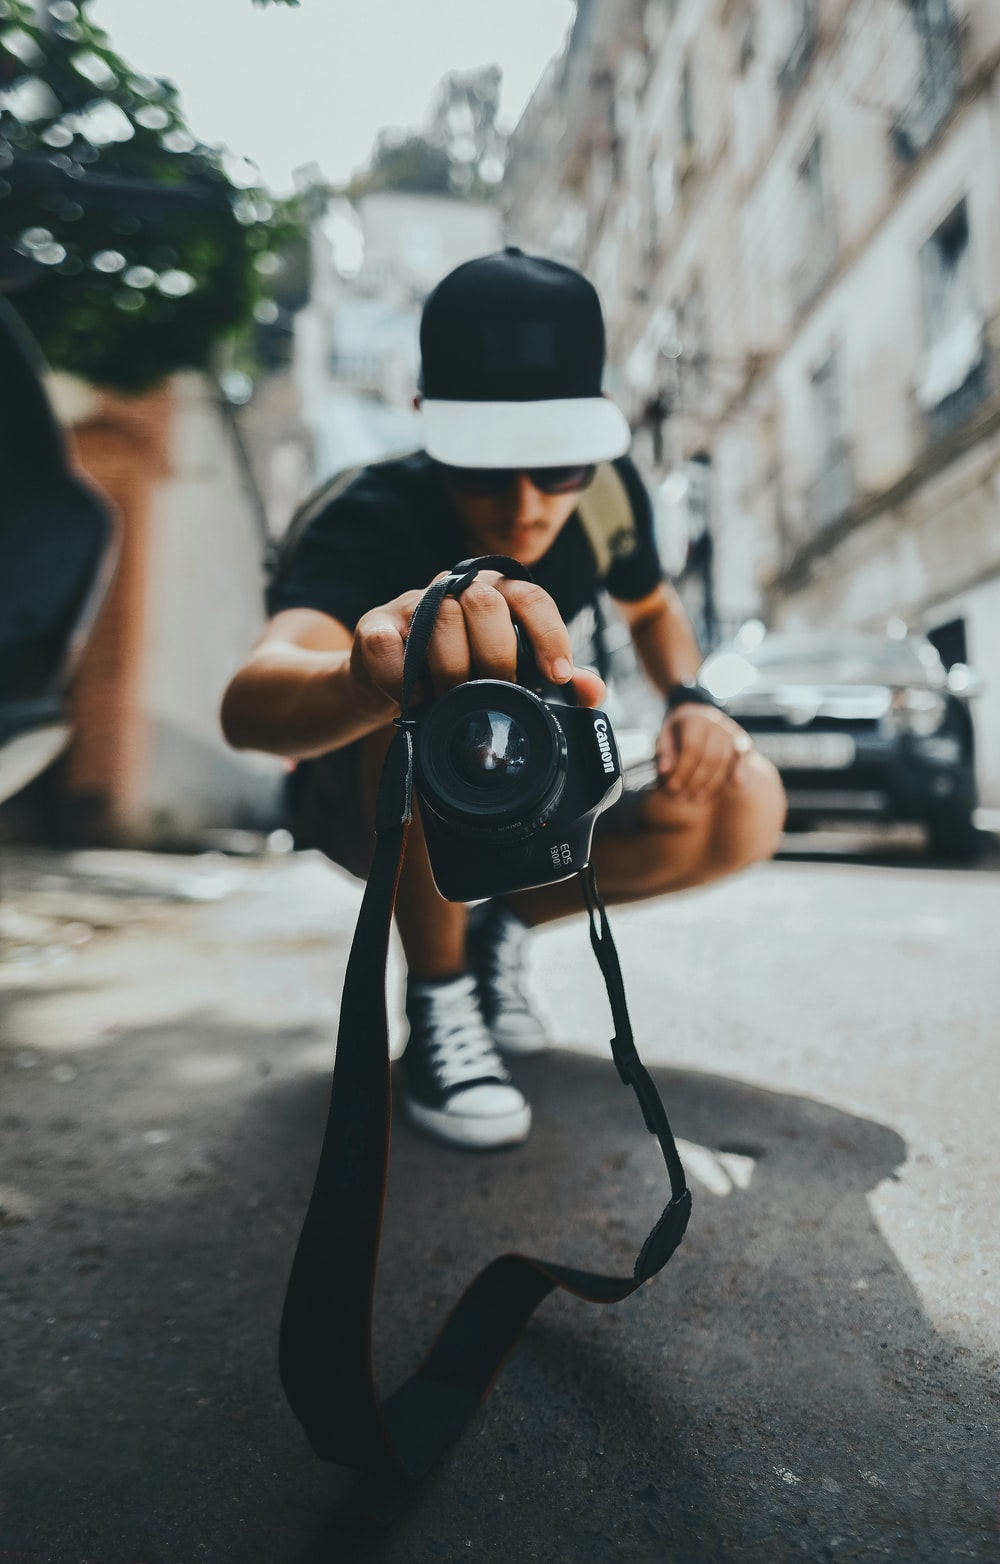 person wearing black and gray cap holding DSLR camera